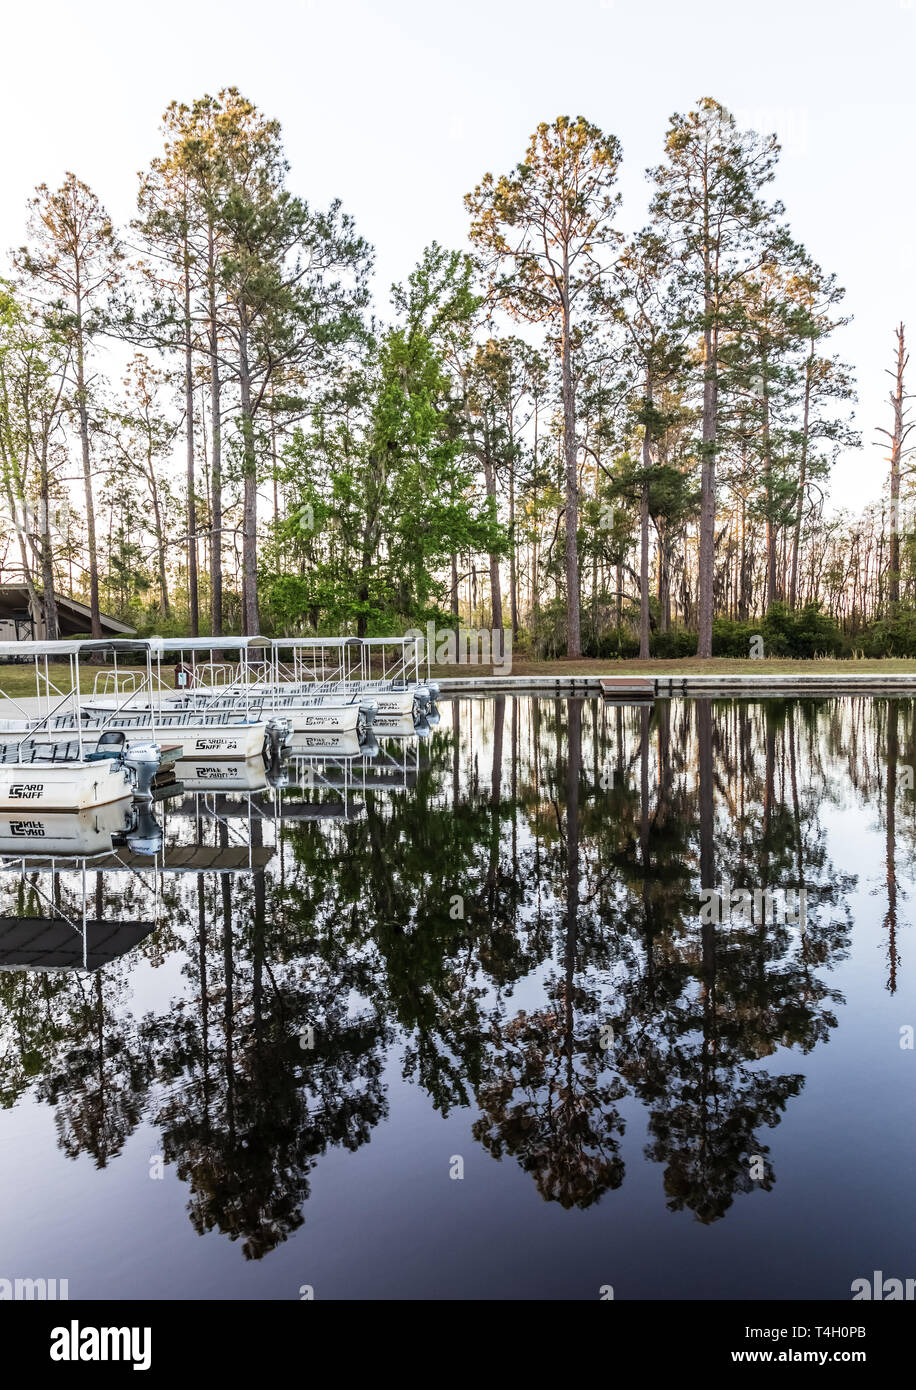 Okefenokee Swamp, Folkston, GA, USA-3/29/19: The canal at eastern entrance to the swamp, with skiffs at dock. Stock Photo